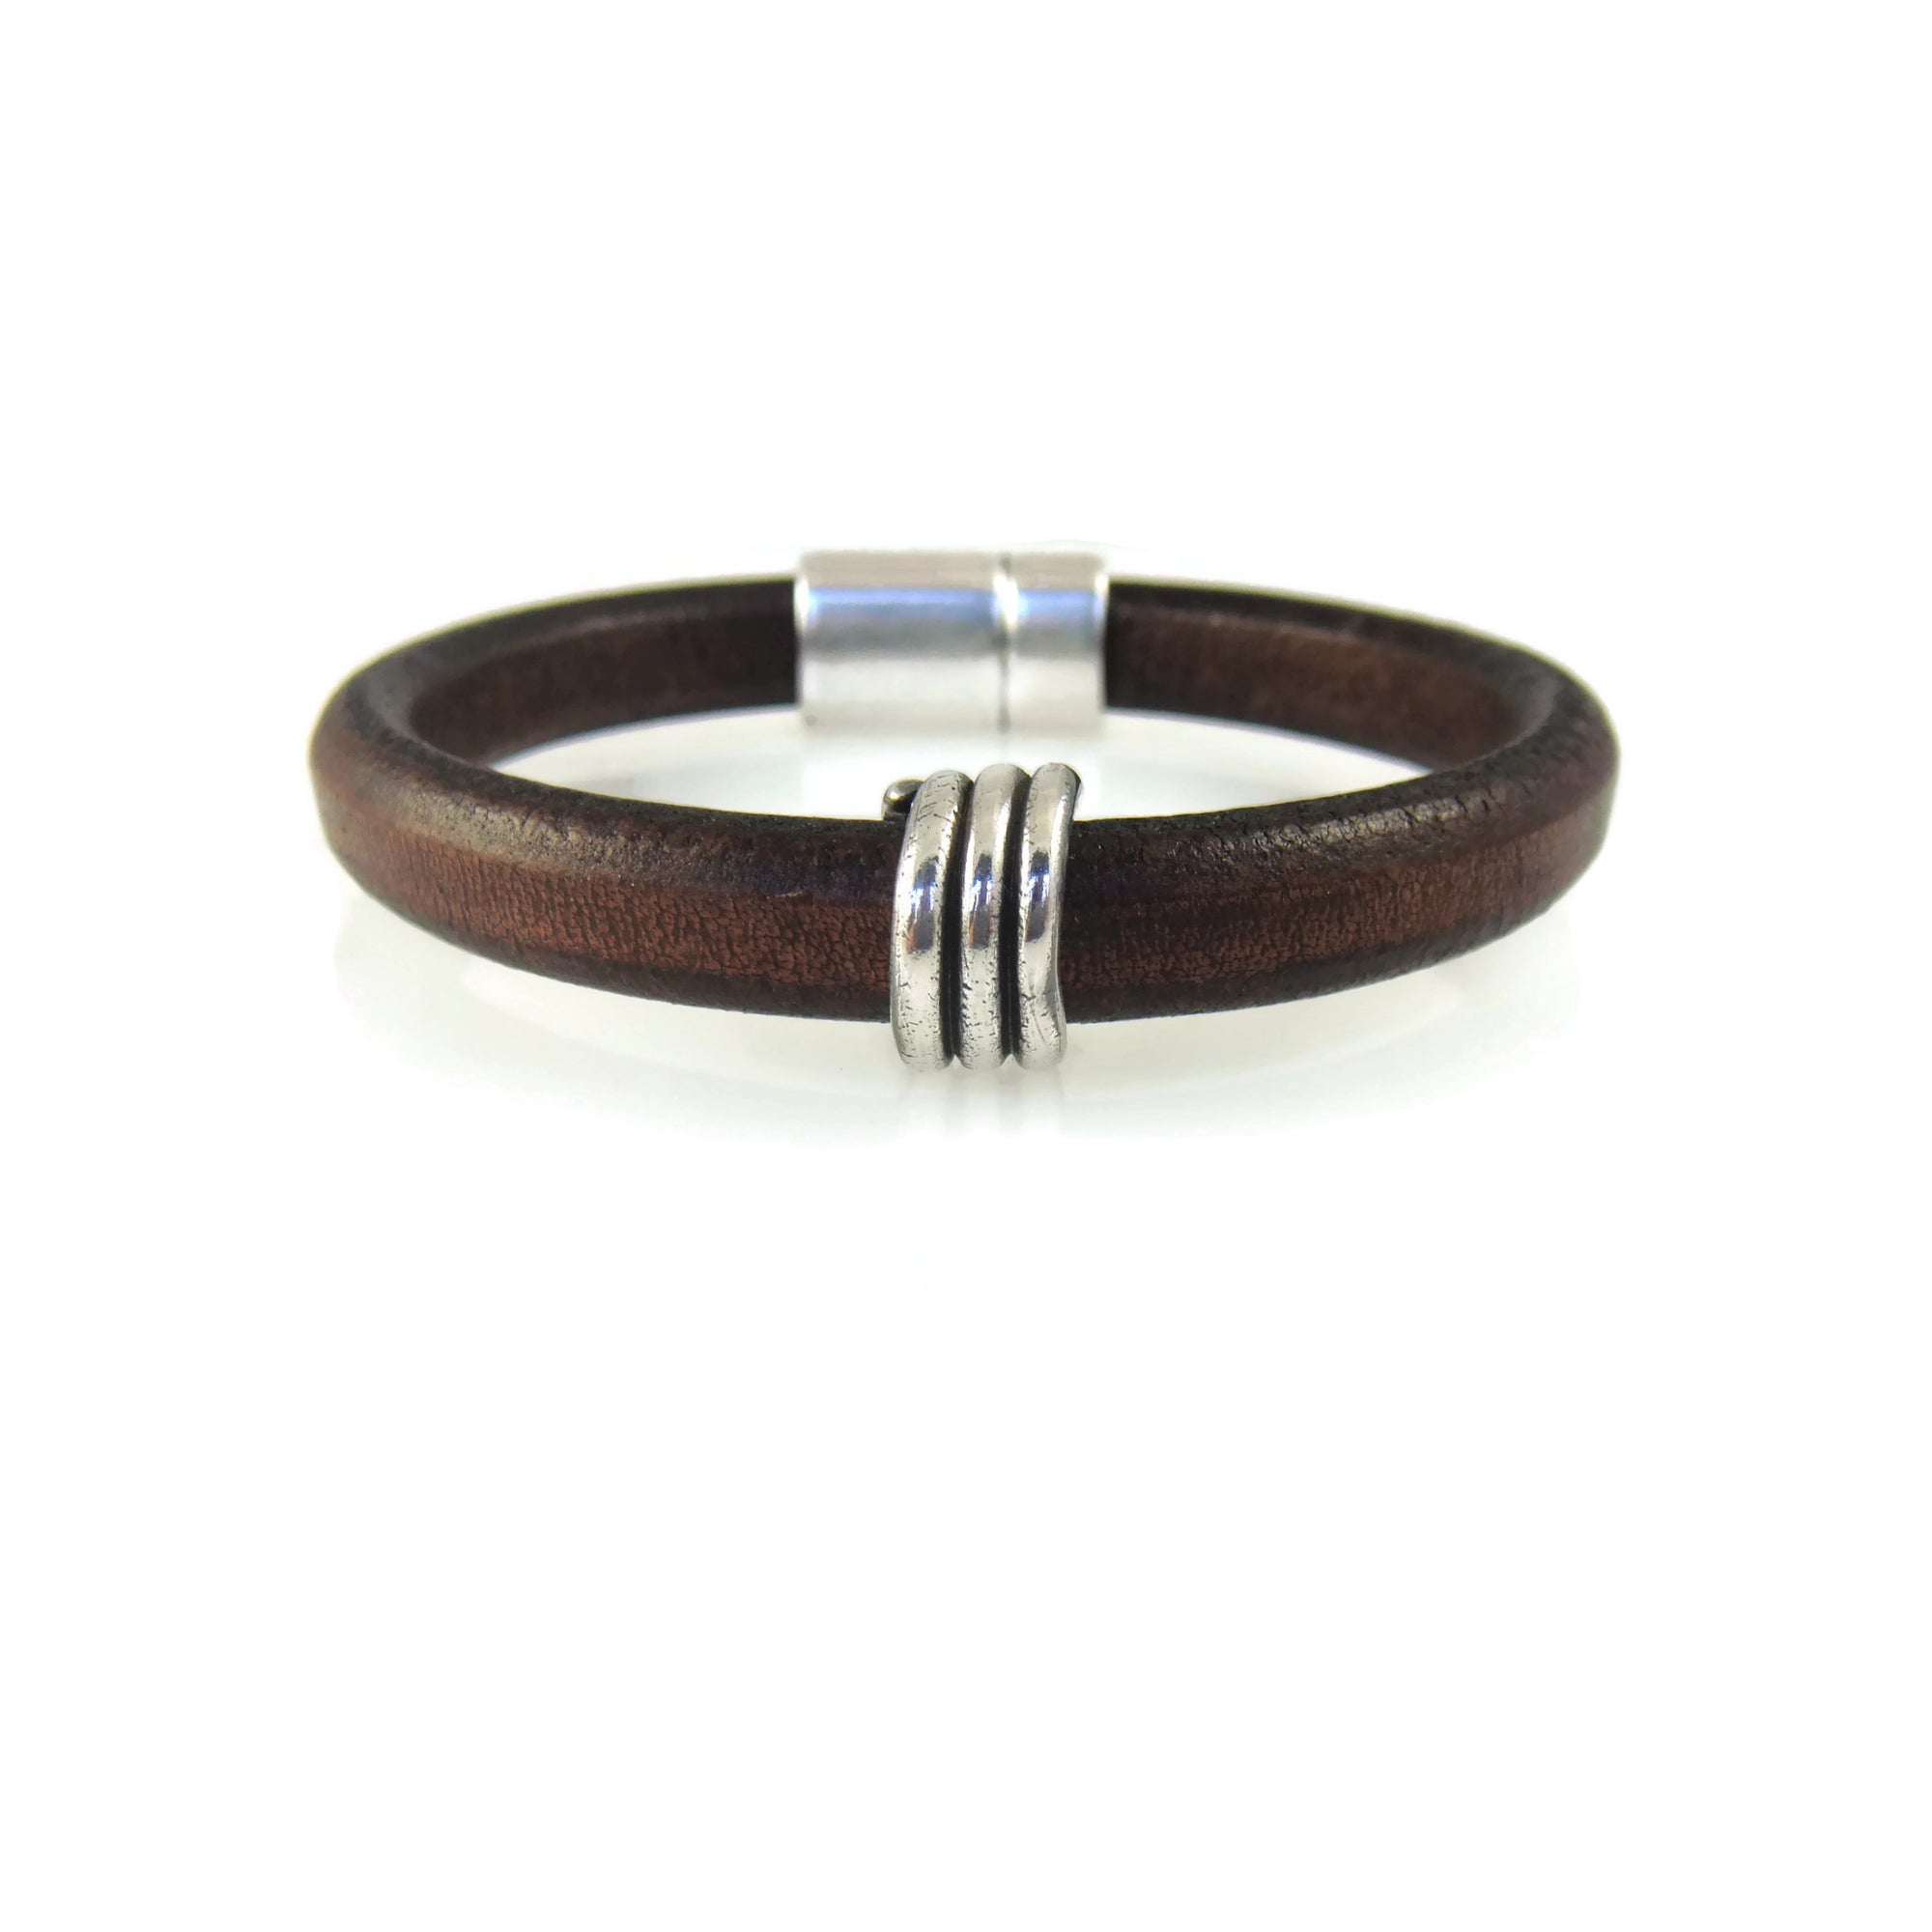 Brown leather bracelet with magnetic clasp and a wrapped silver bead made from fine silver clay.